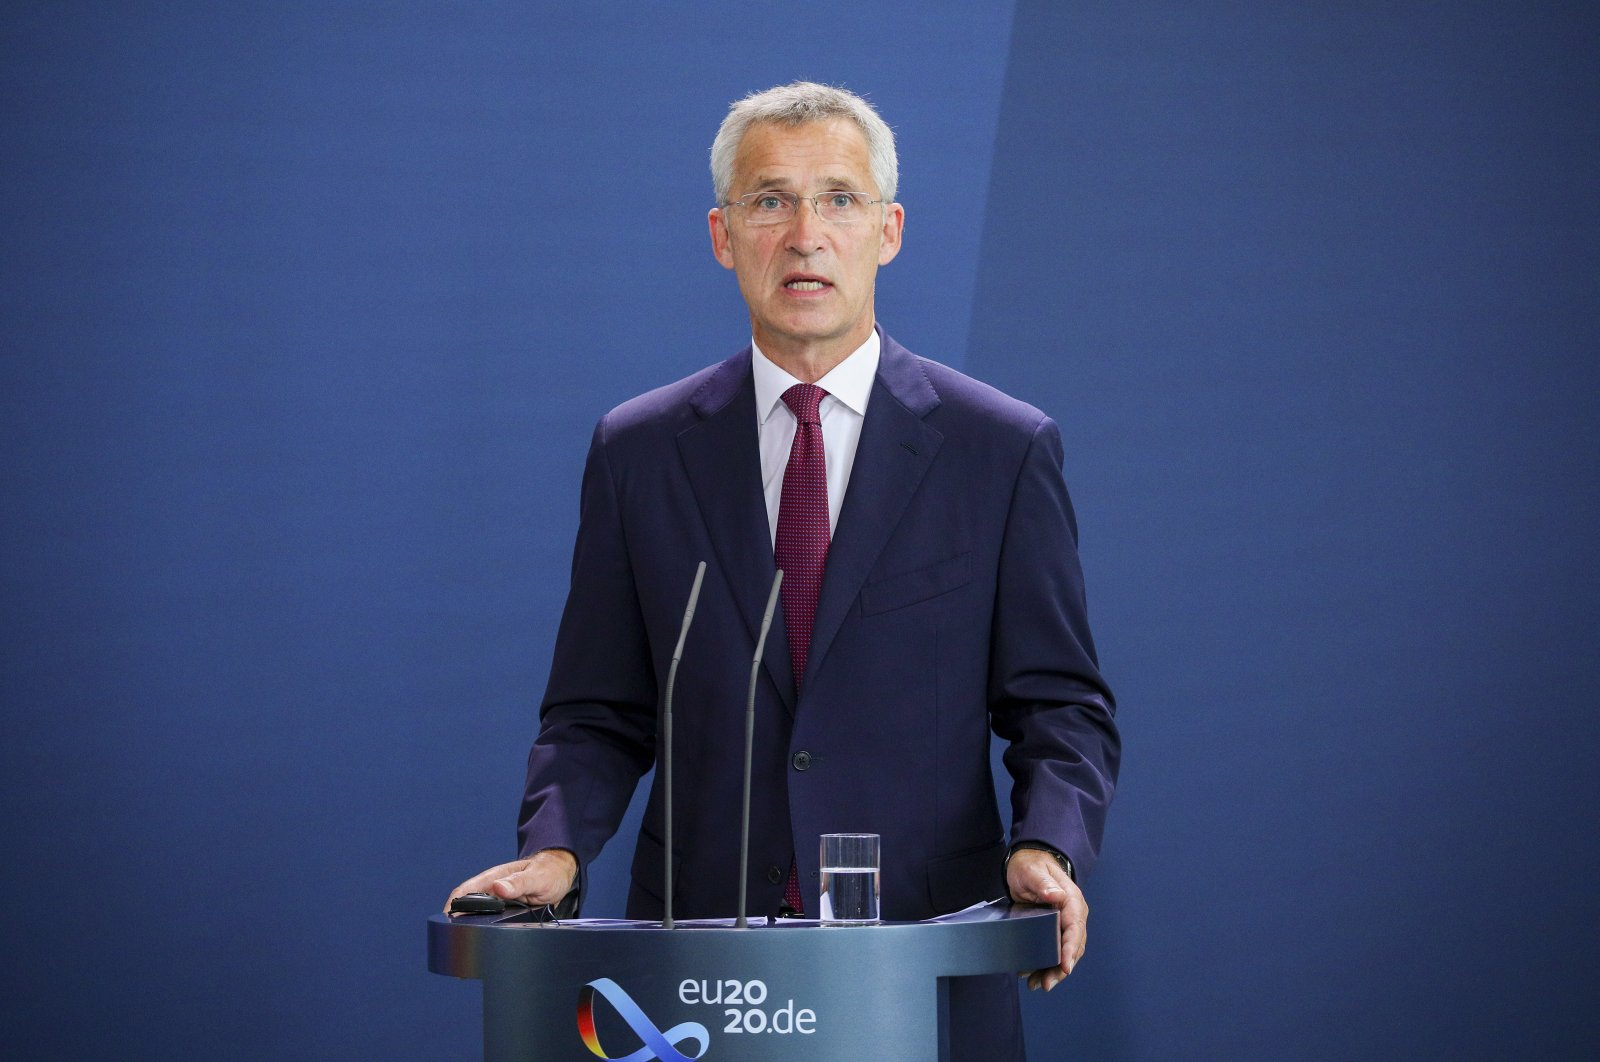 NATO Secretary-General Jens Stoltenberg speaks to the media prior to talks with German Chancellor Angela Merkel, at the Chancellery in Berlin, Germany, Aug. 27, 2020. (EPA Photo)